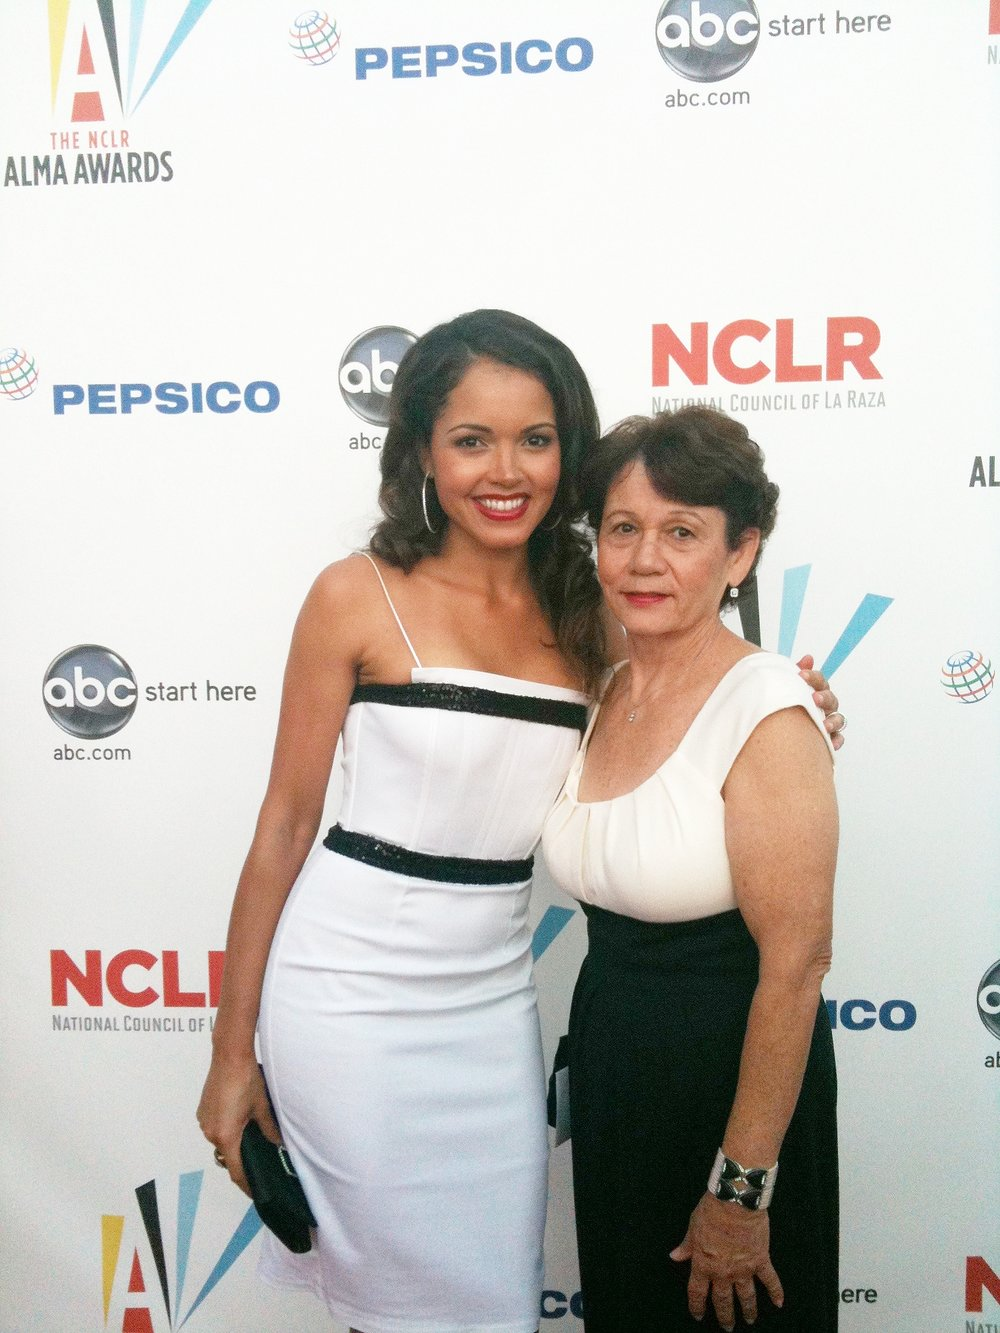 At the NCLR Awards. -